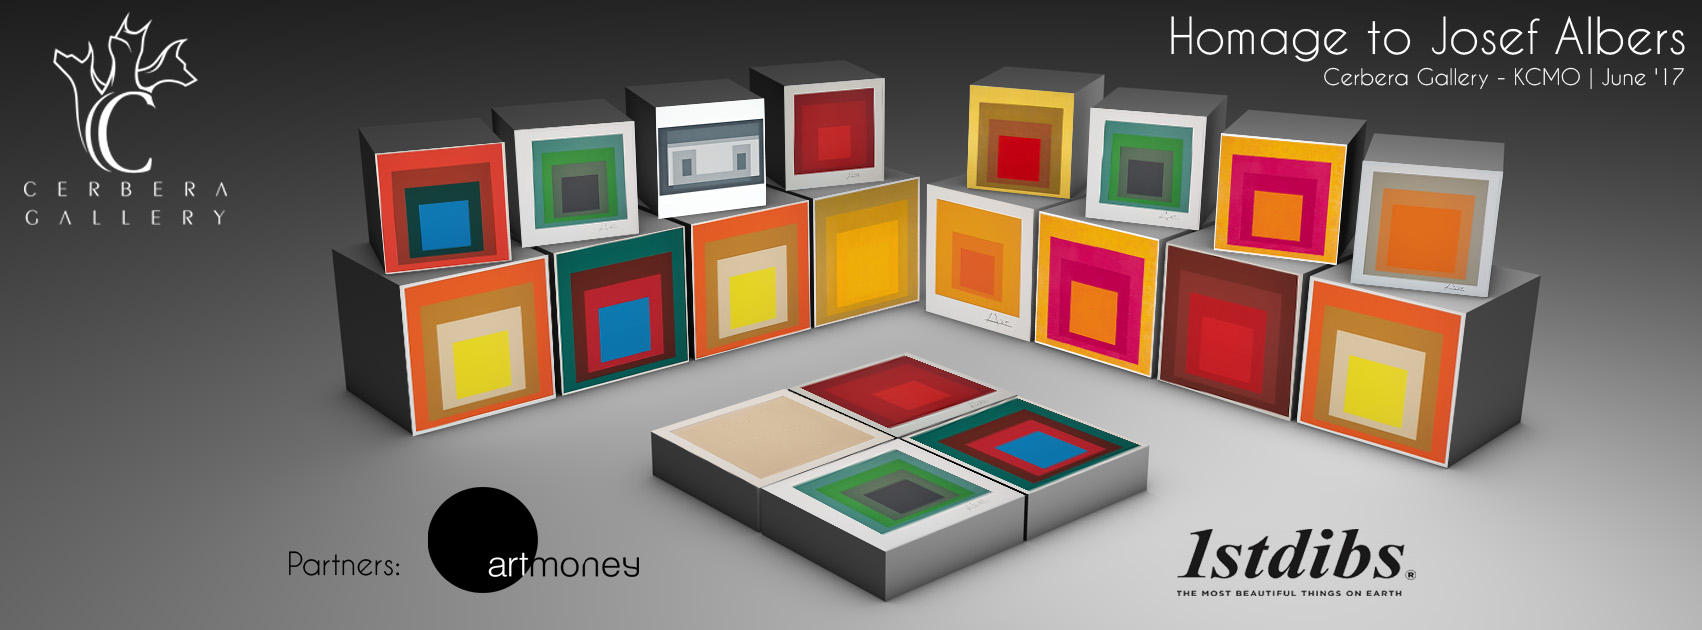 Cerbera Gallery - Homage to Josef Albers & the Square